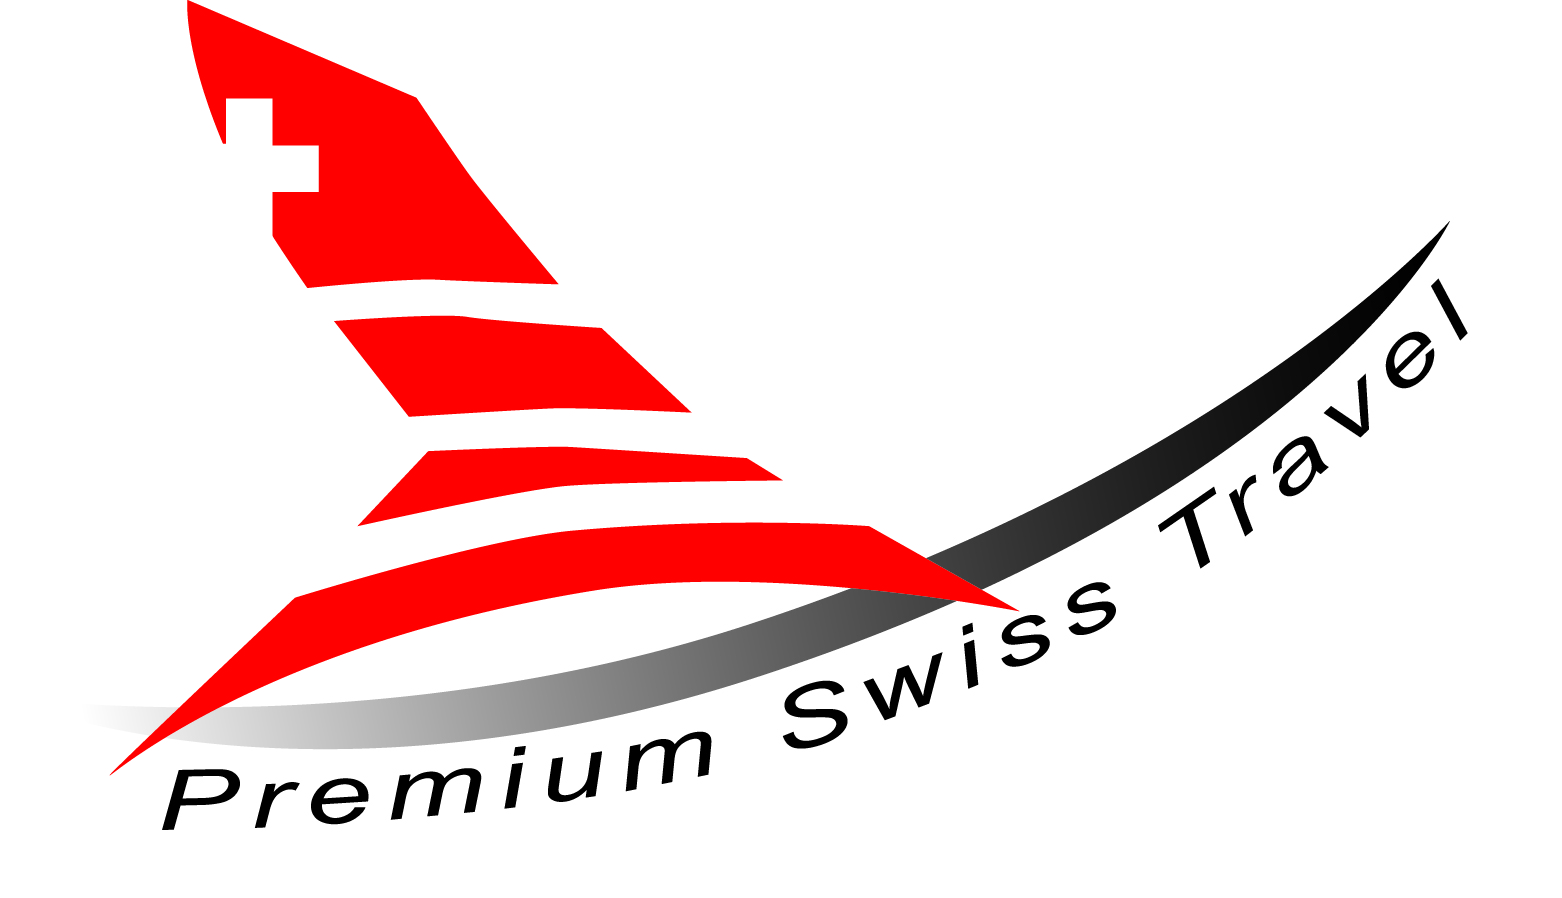 Premium Swiss Travel |   Search results global